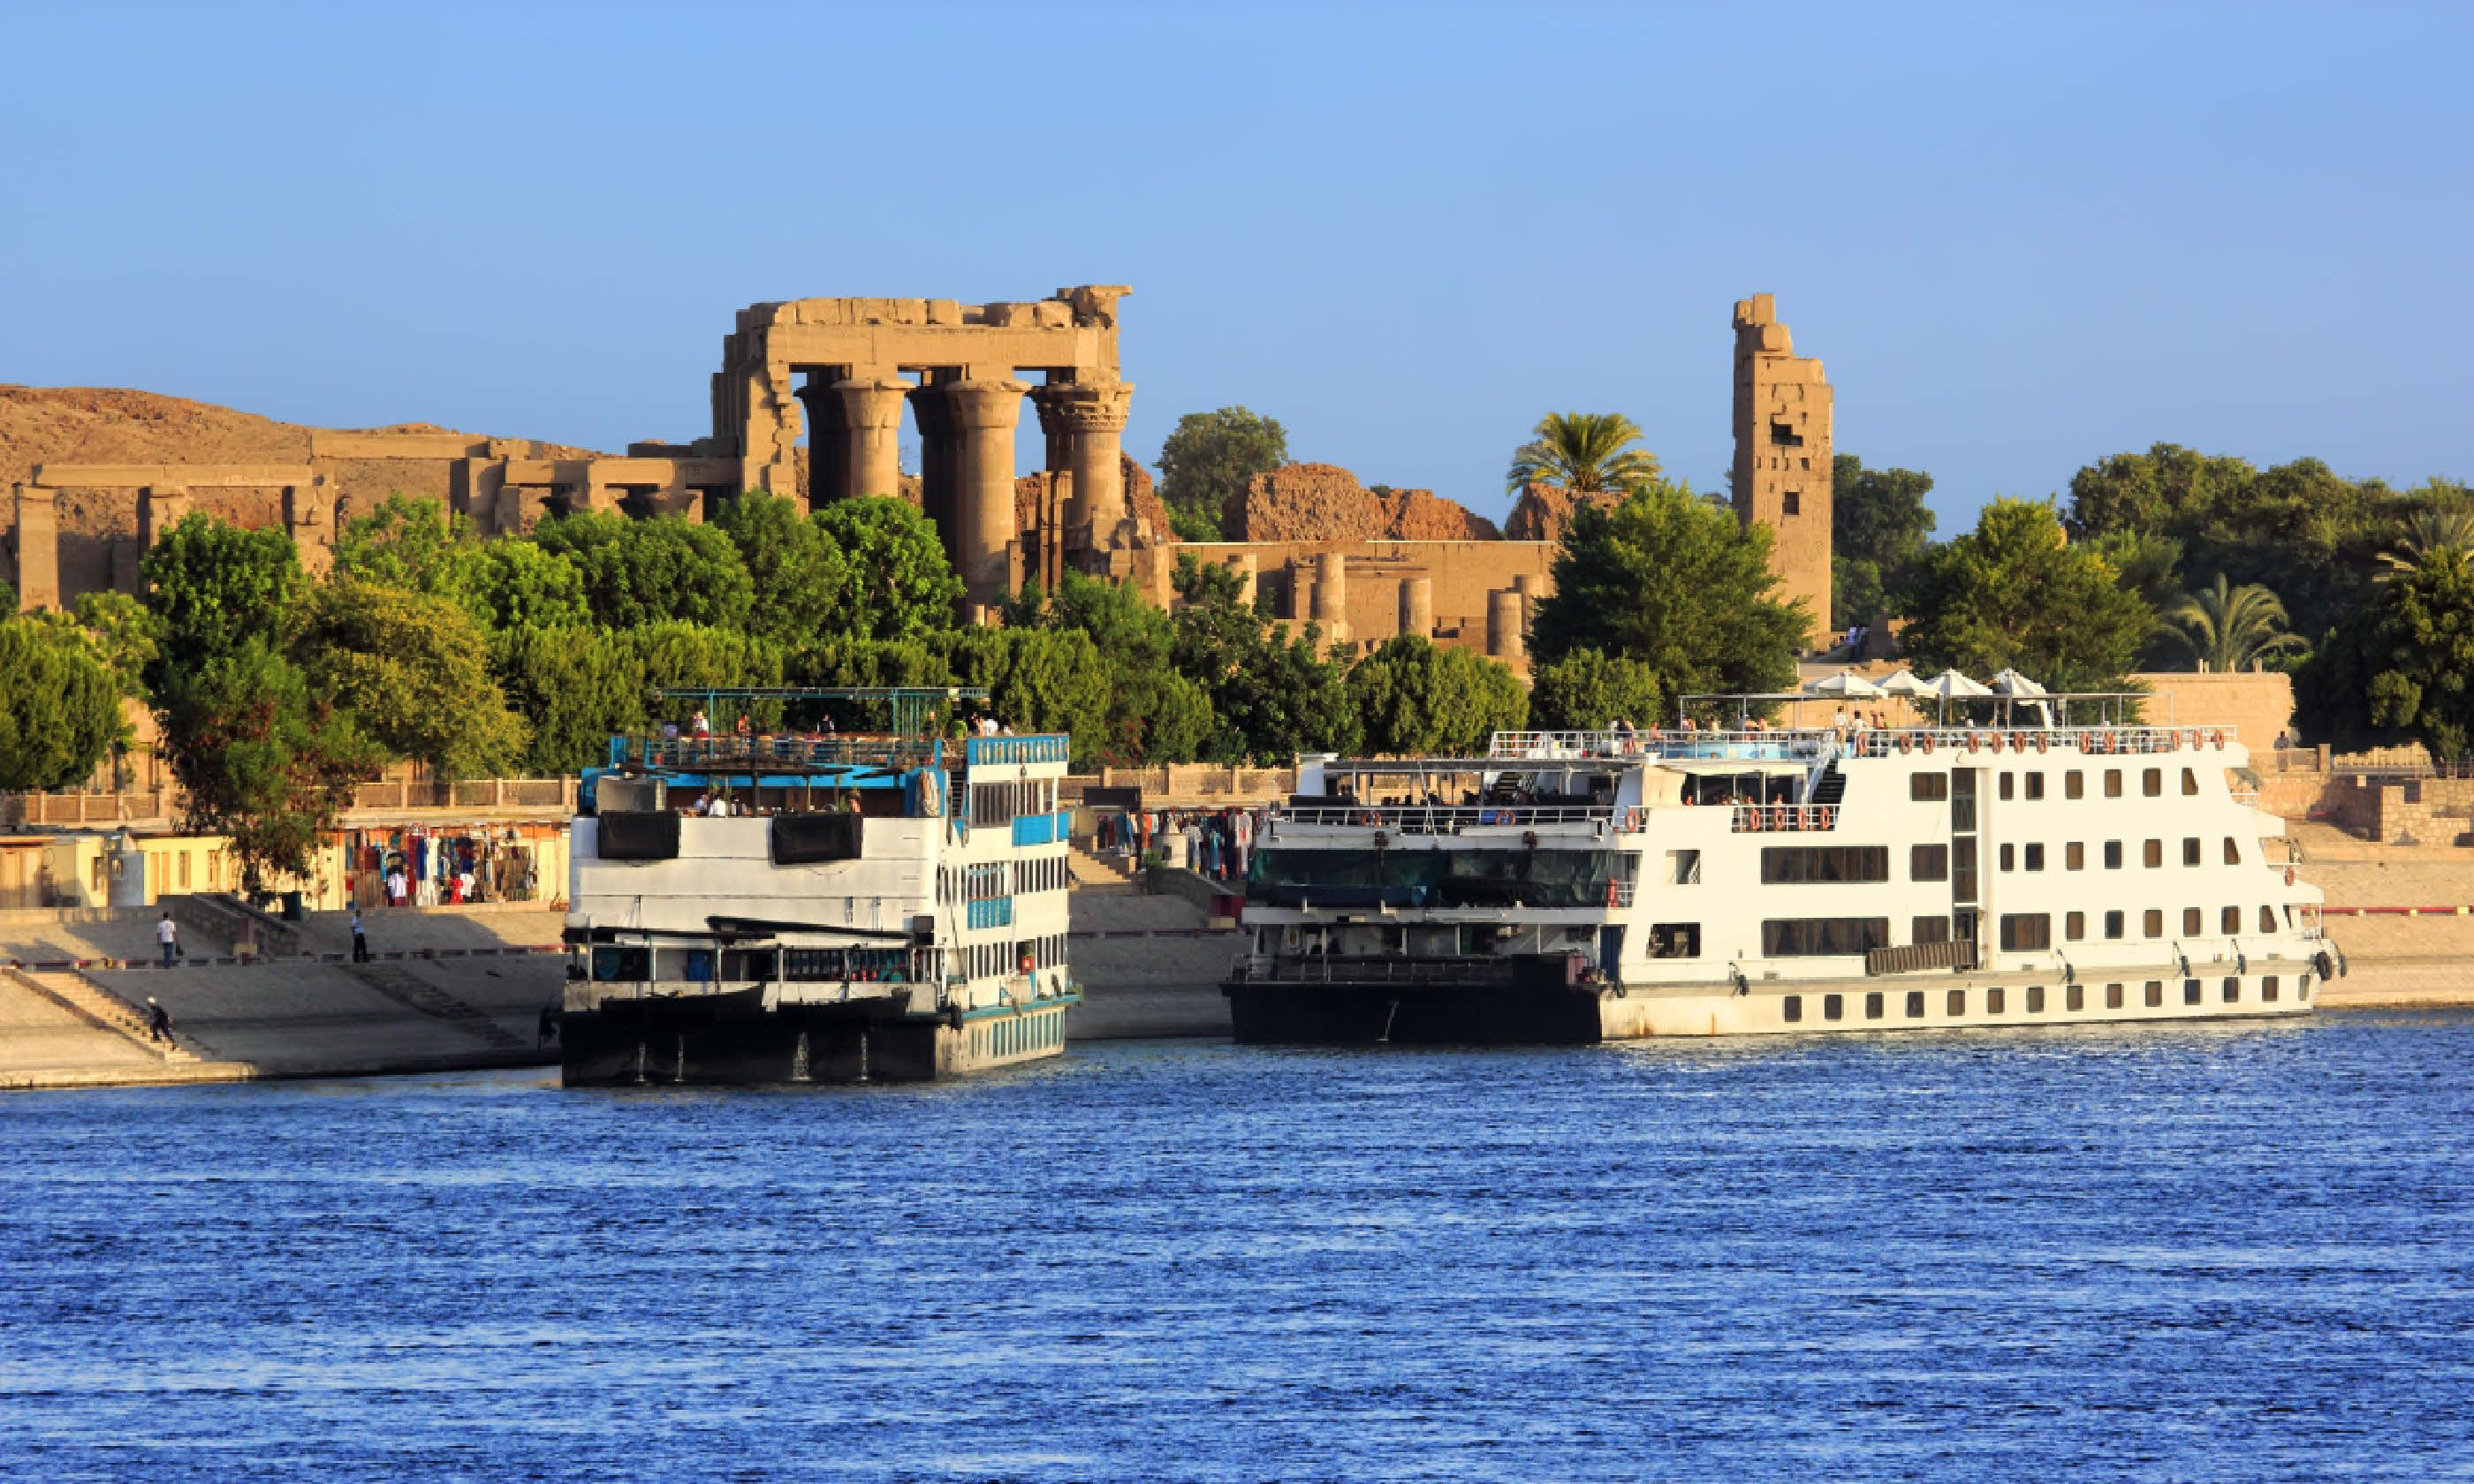 Cruise ships docked at Kom Ombo on the Nile (Shutterstock)